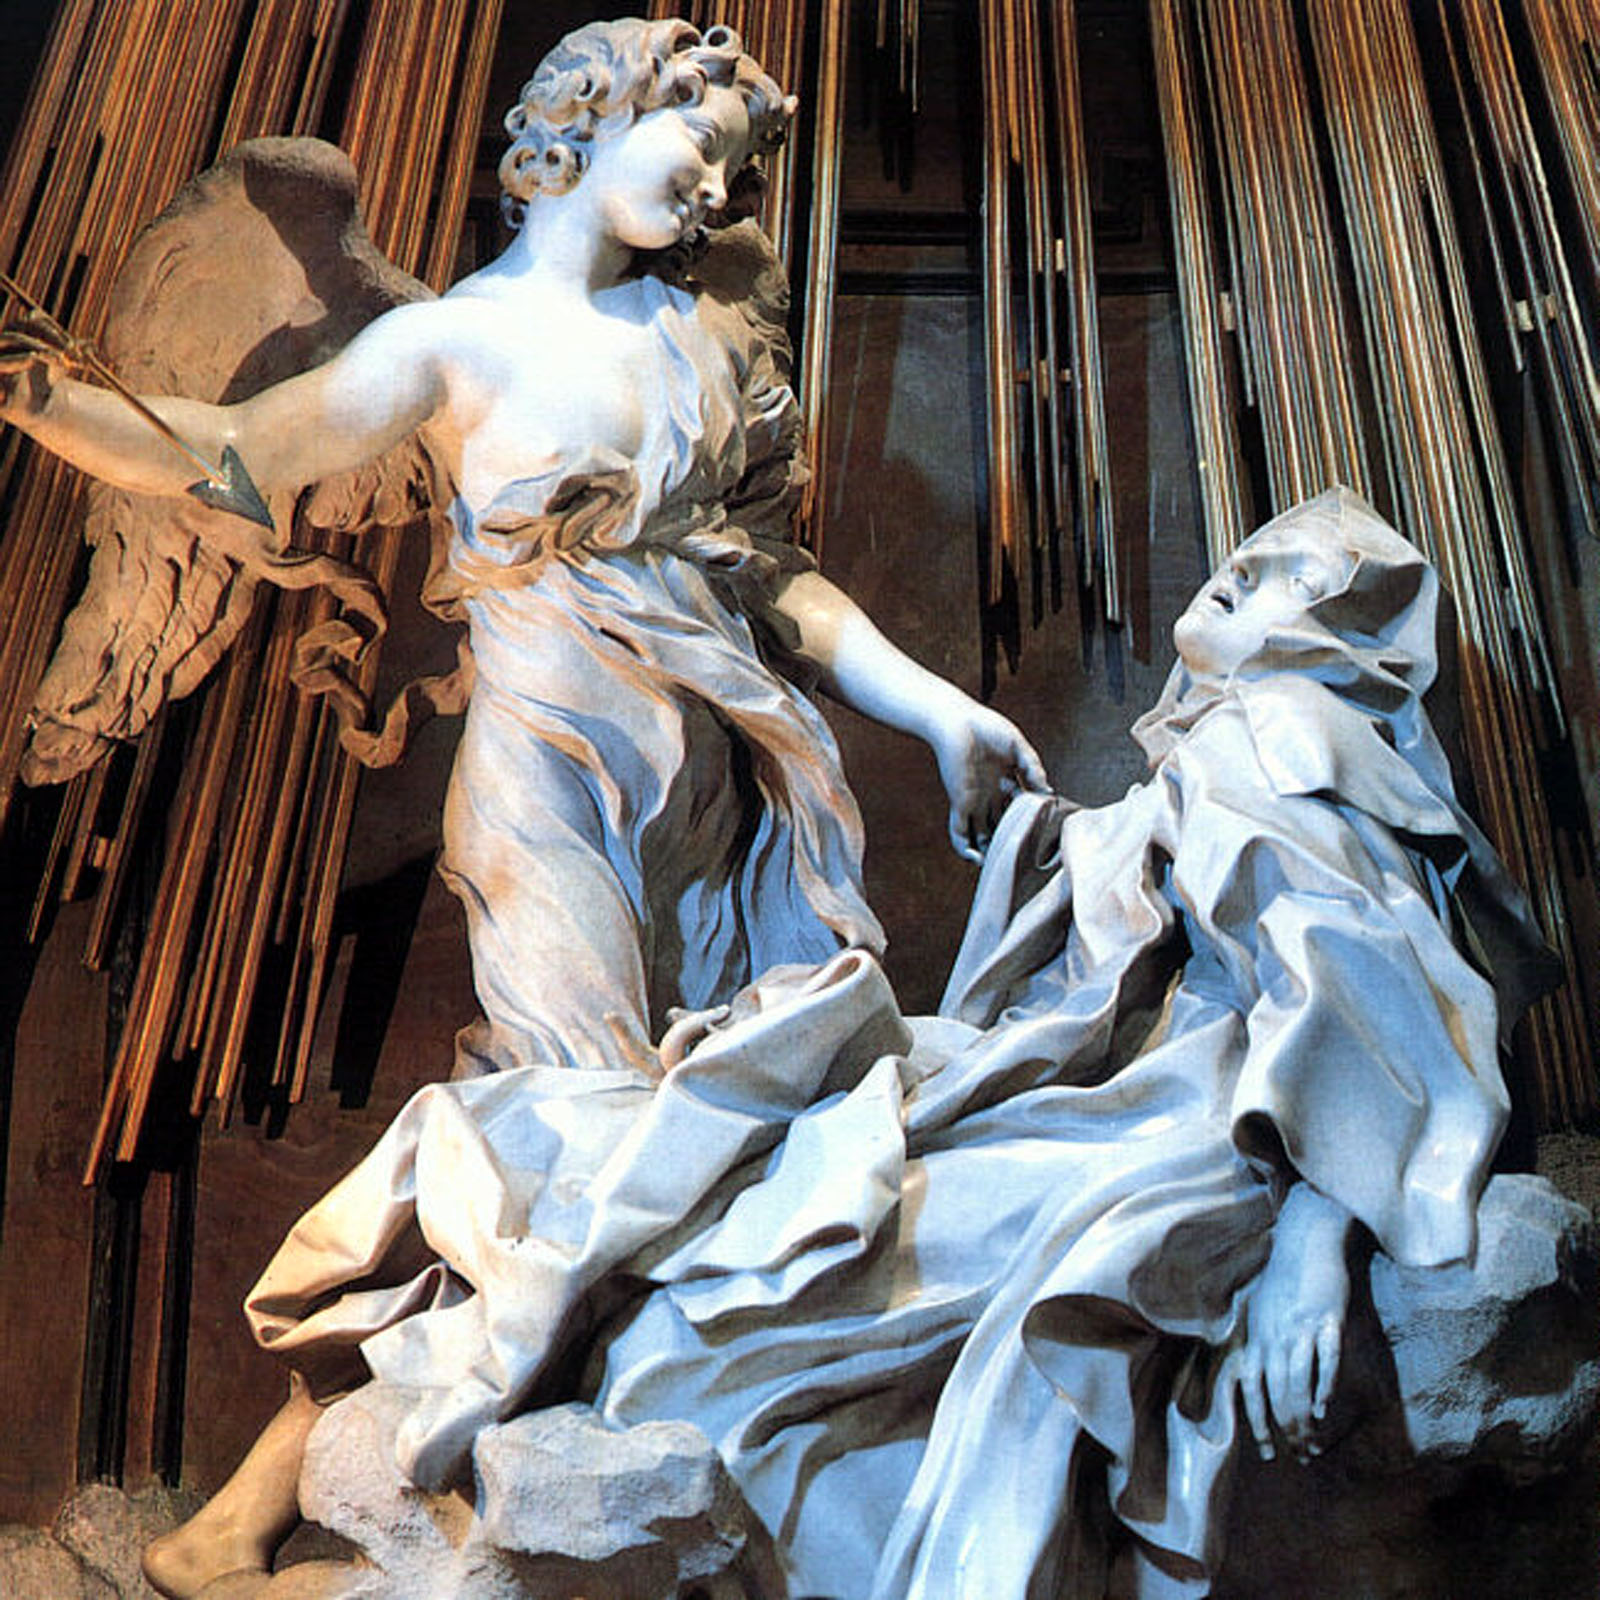 St. Teresa of Avila sculpture in Santa Maria della Vittoria, Rome